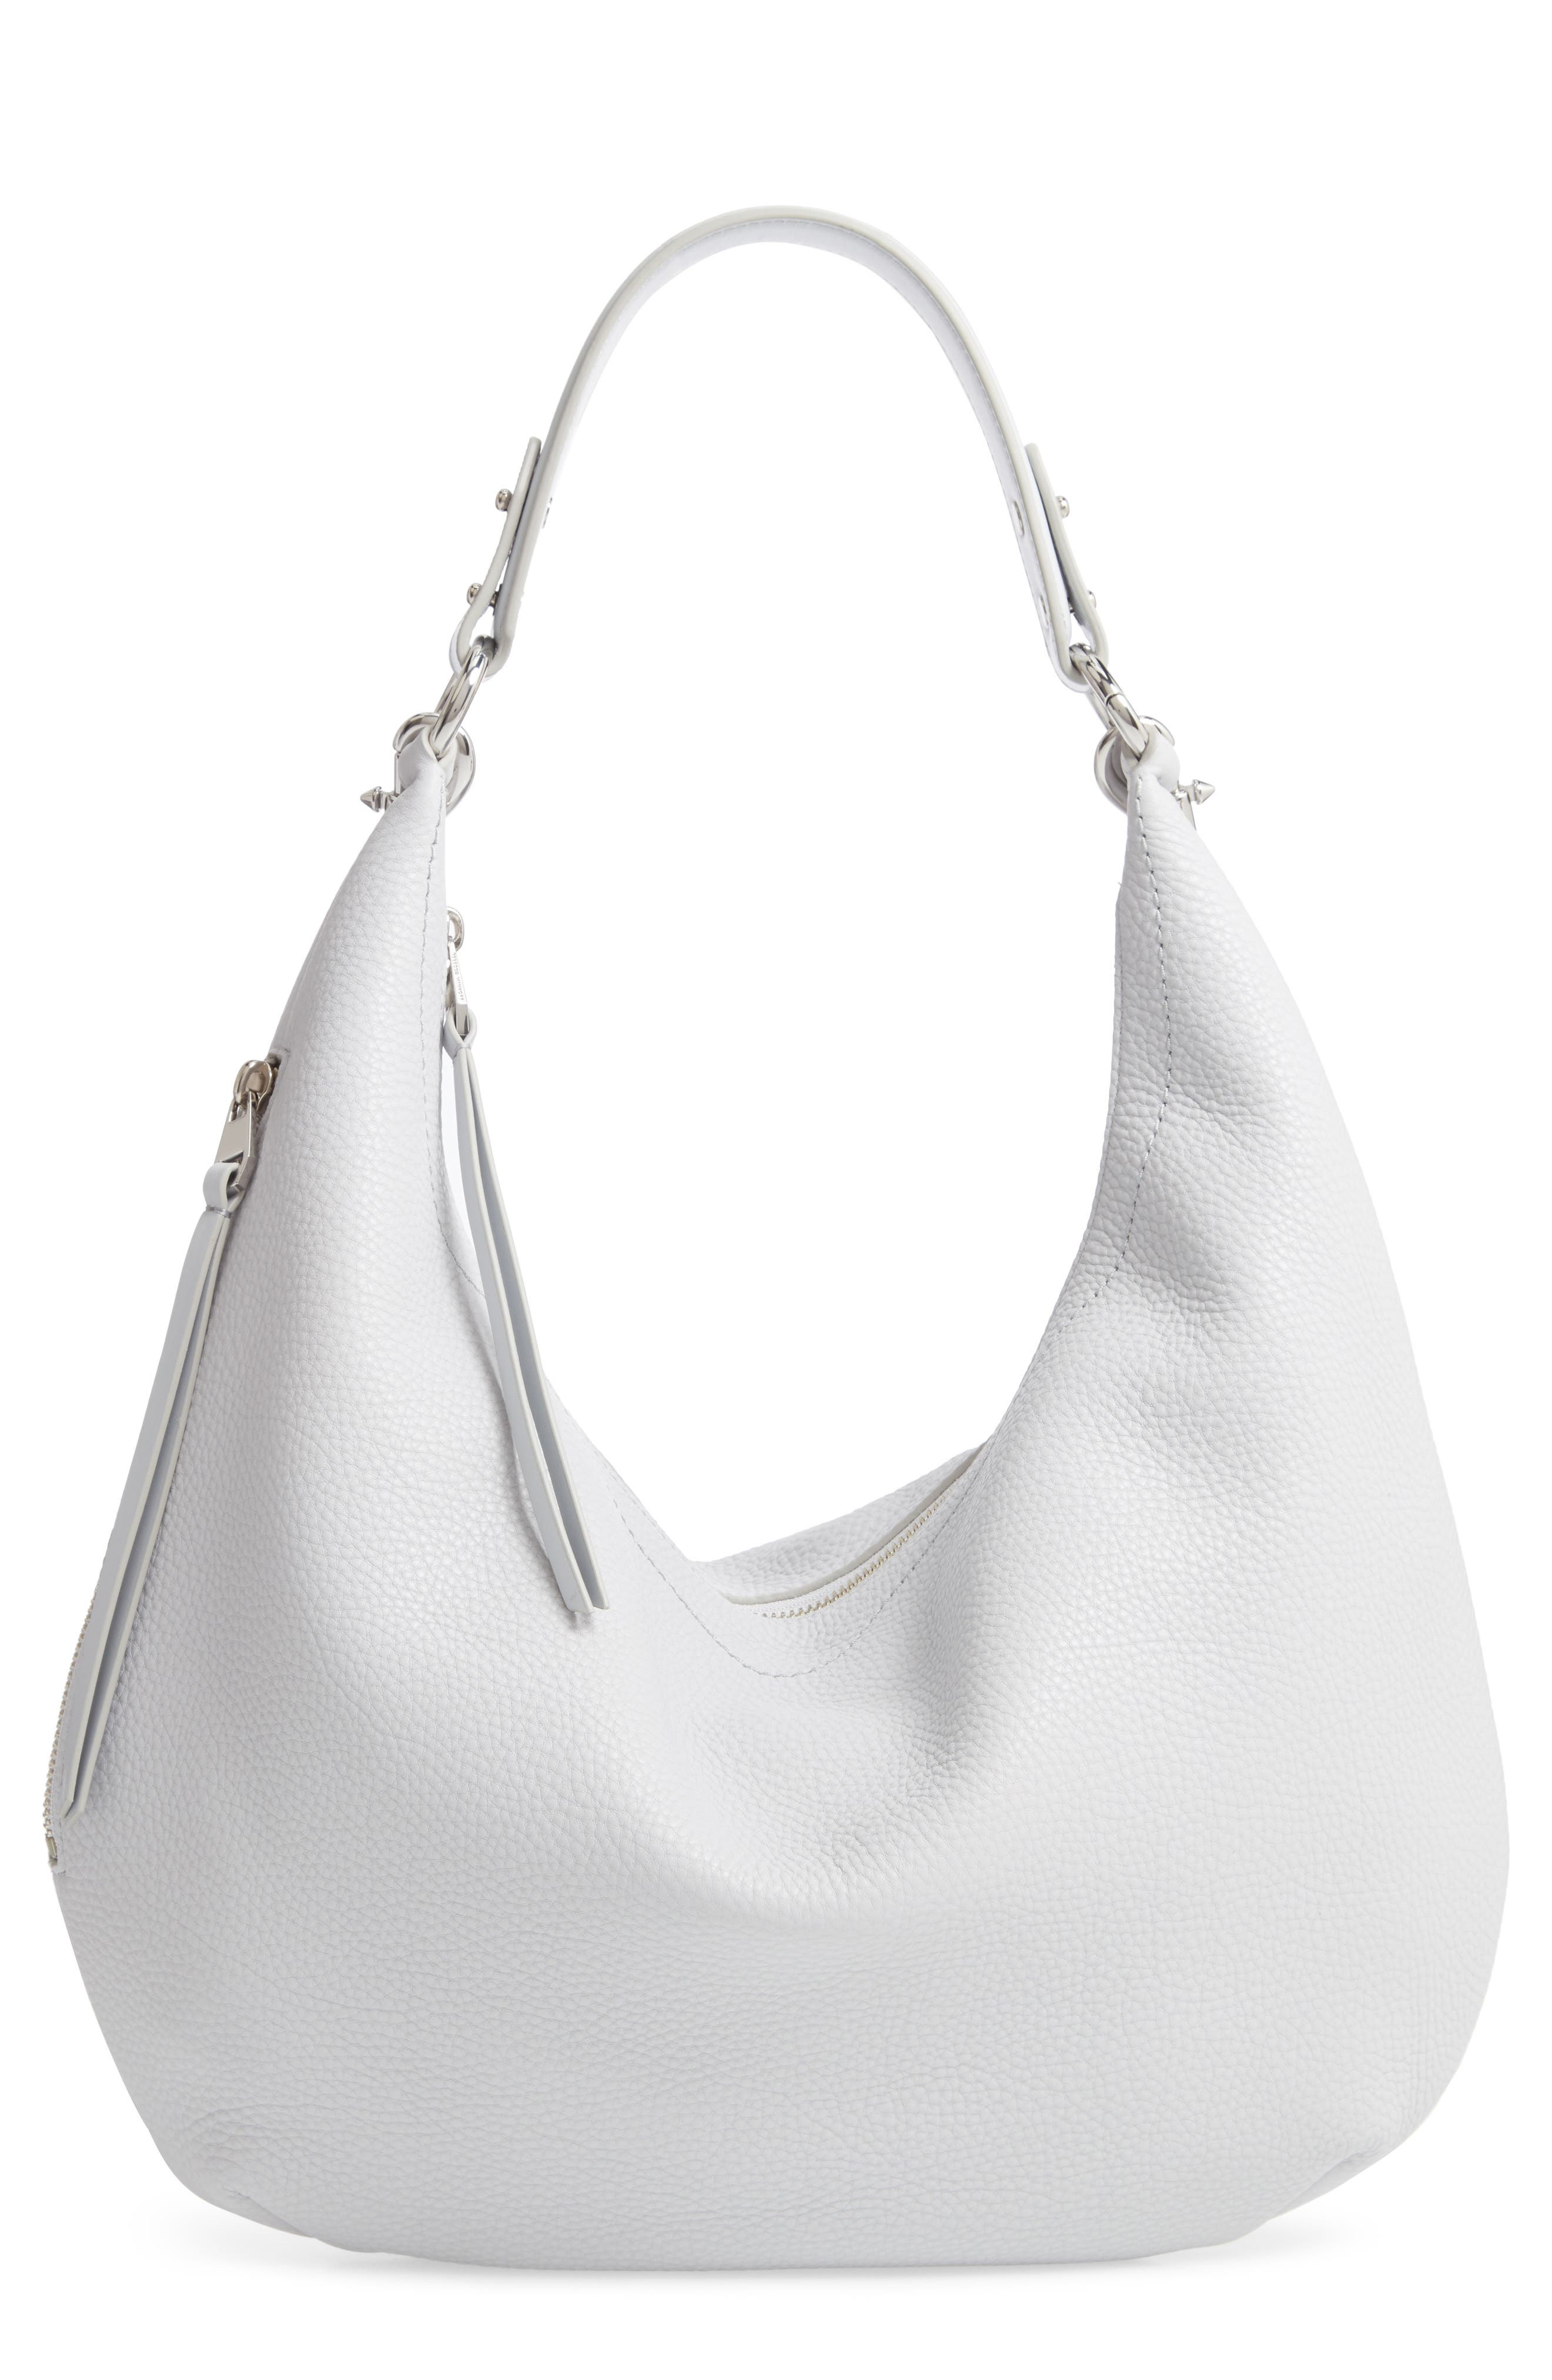 REBECCA MINKOFF, Michelle Leather Hobo, Main thumbnail 1, color, ICE GREY